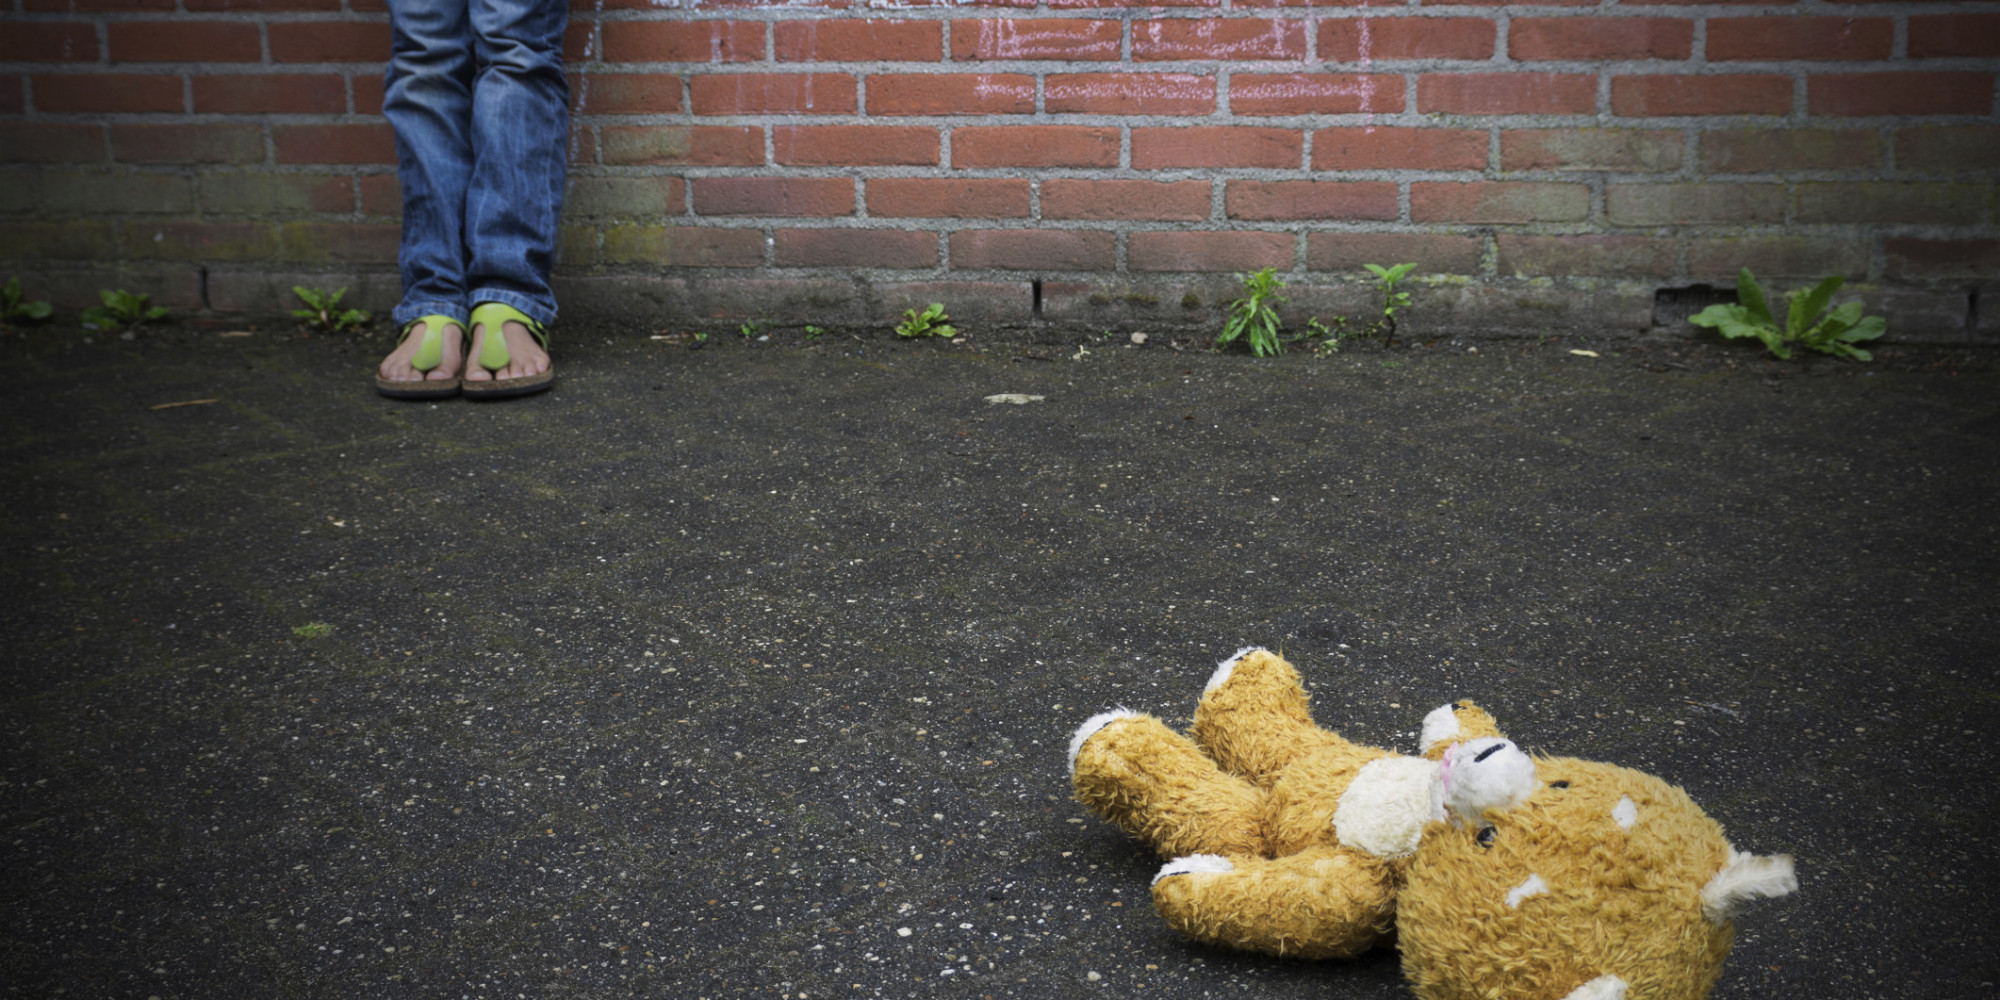 Child Abuse: The Deadly Cost of Inattention and Inaction